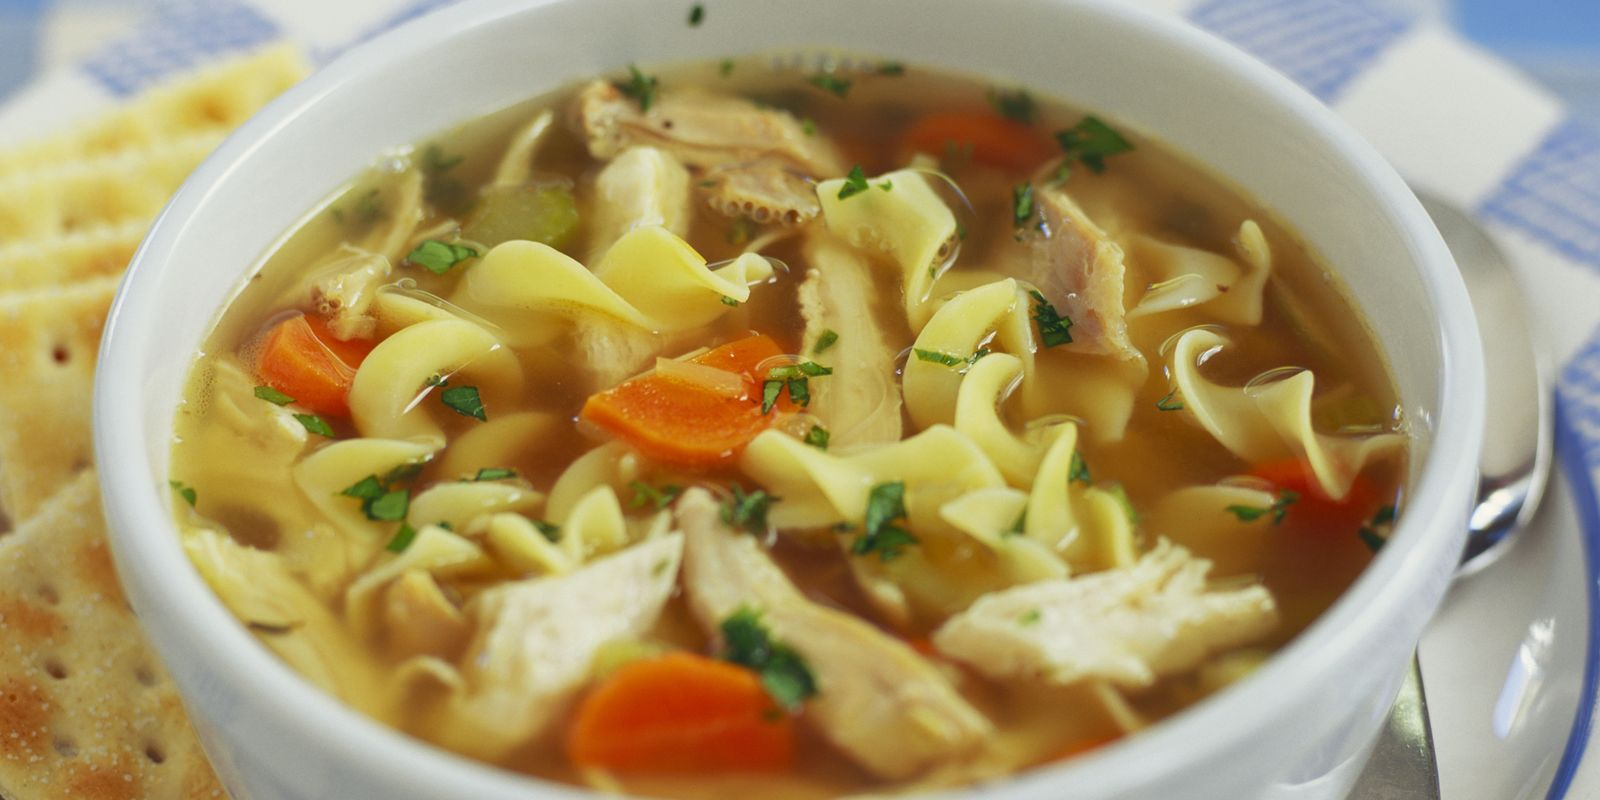 Homemade Chicken Noodle Soup Recipe - How to Make Chicken ...